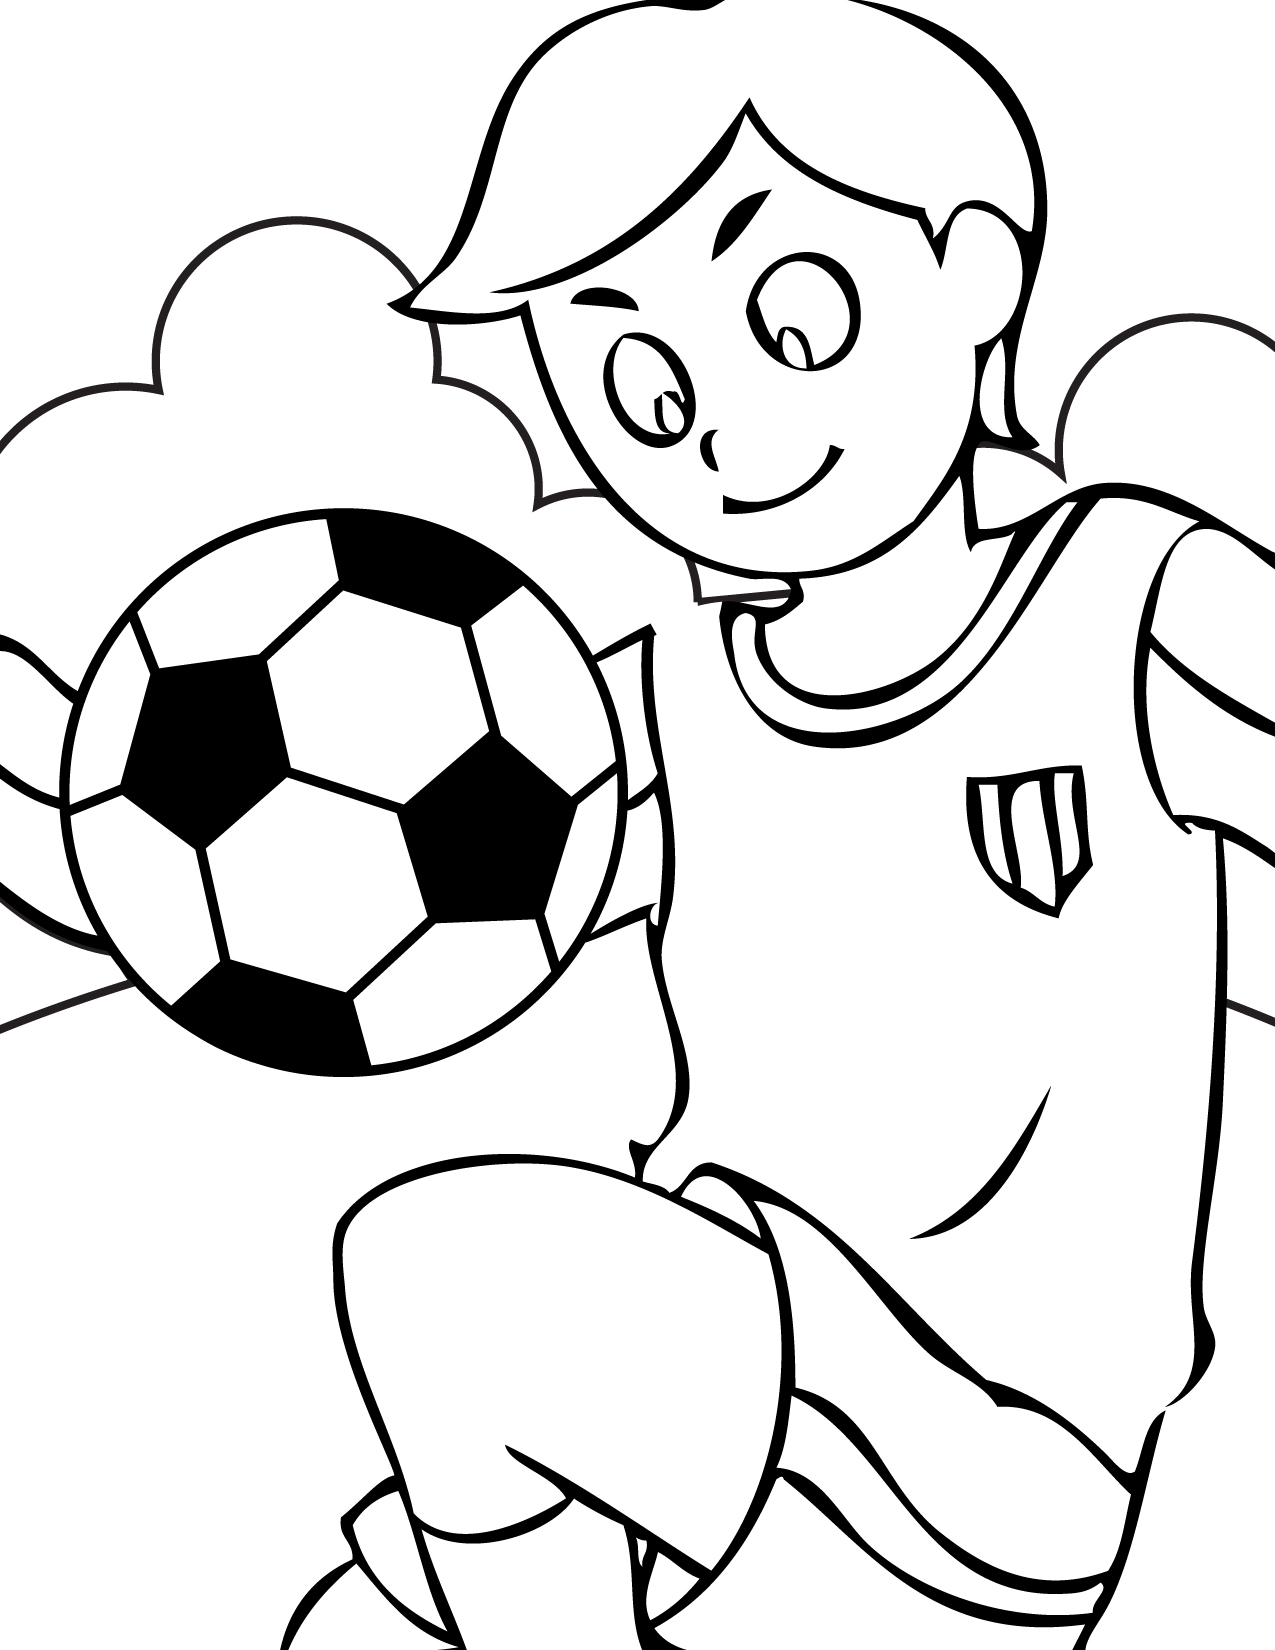 Soccer Coloring Pages 5